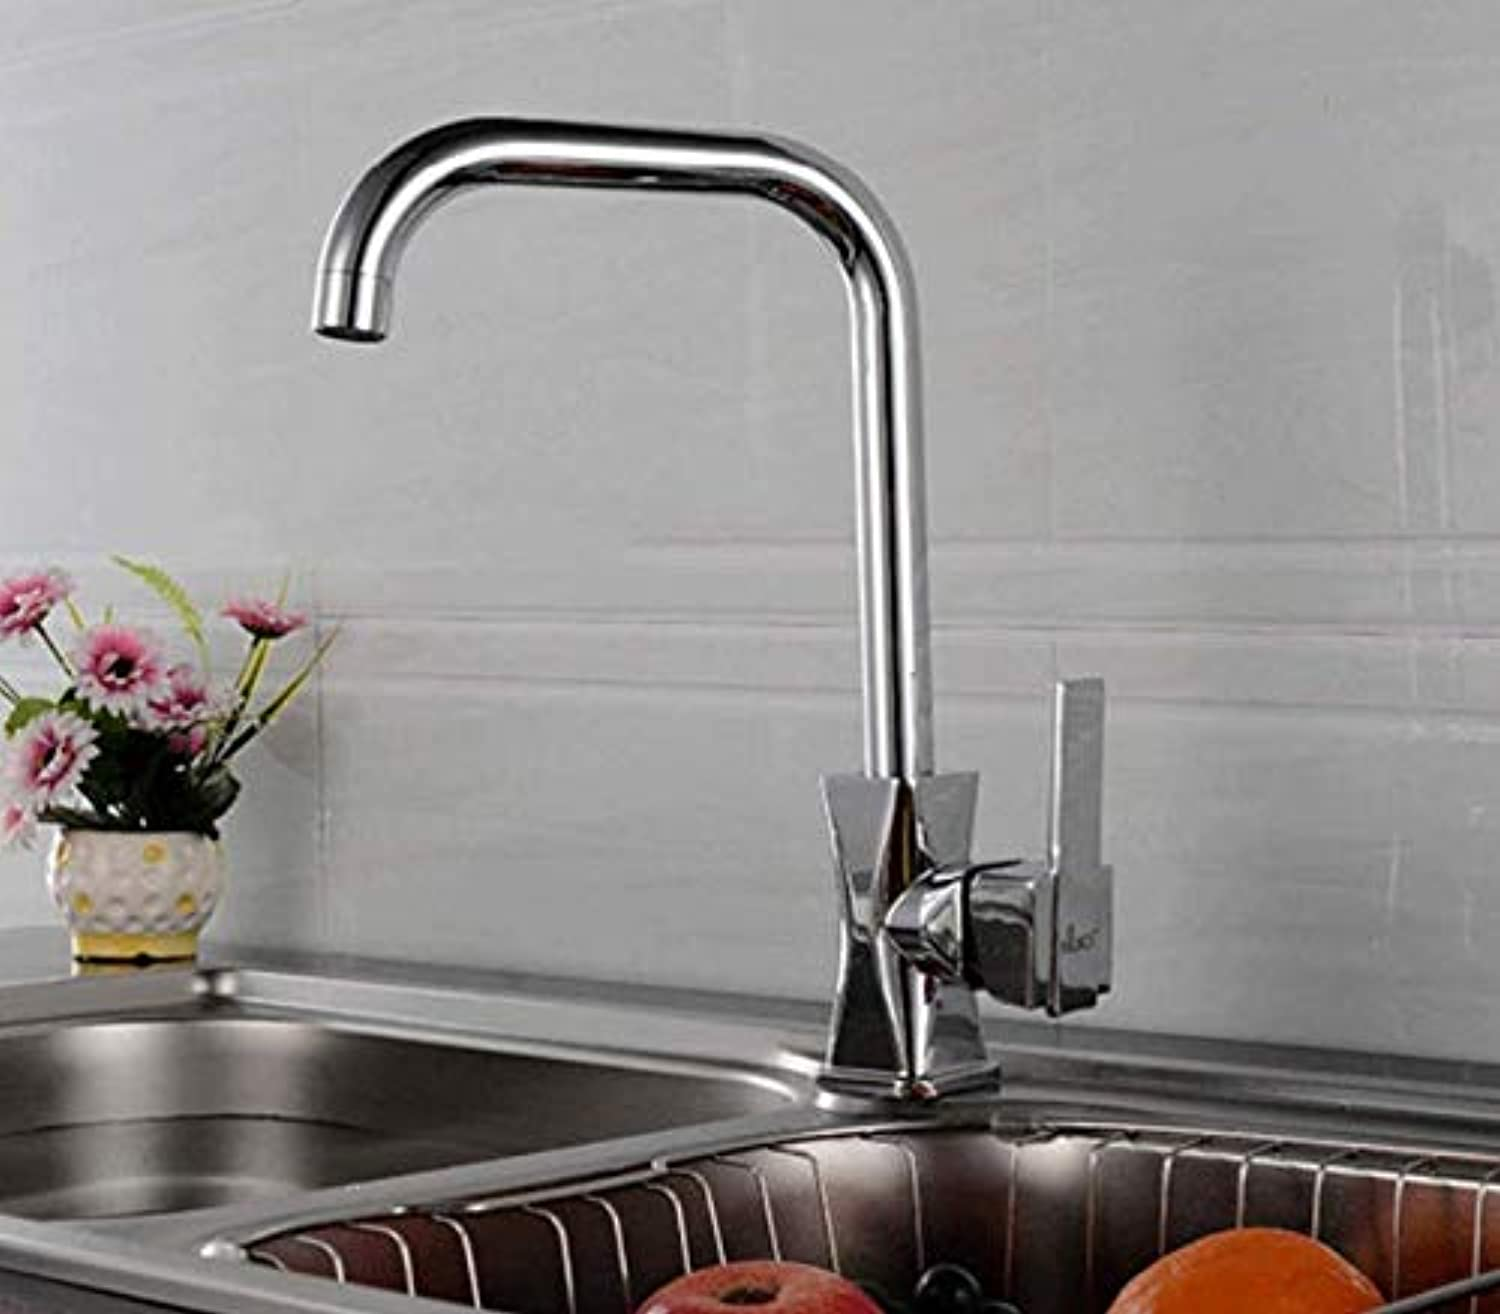 Water Tap Taps Faucet Hot and Cold Water Faucet Kitchen Sink Faucet 7 Word Water